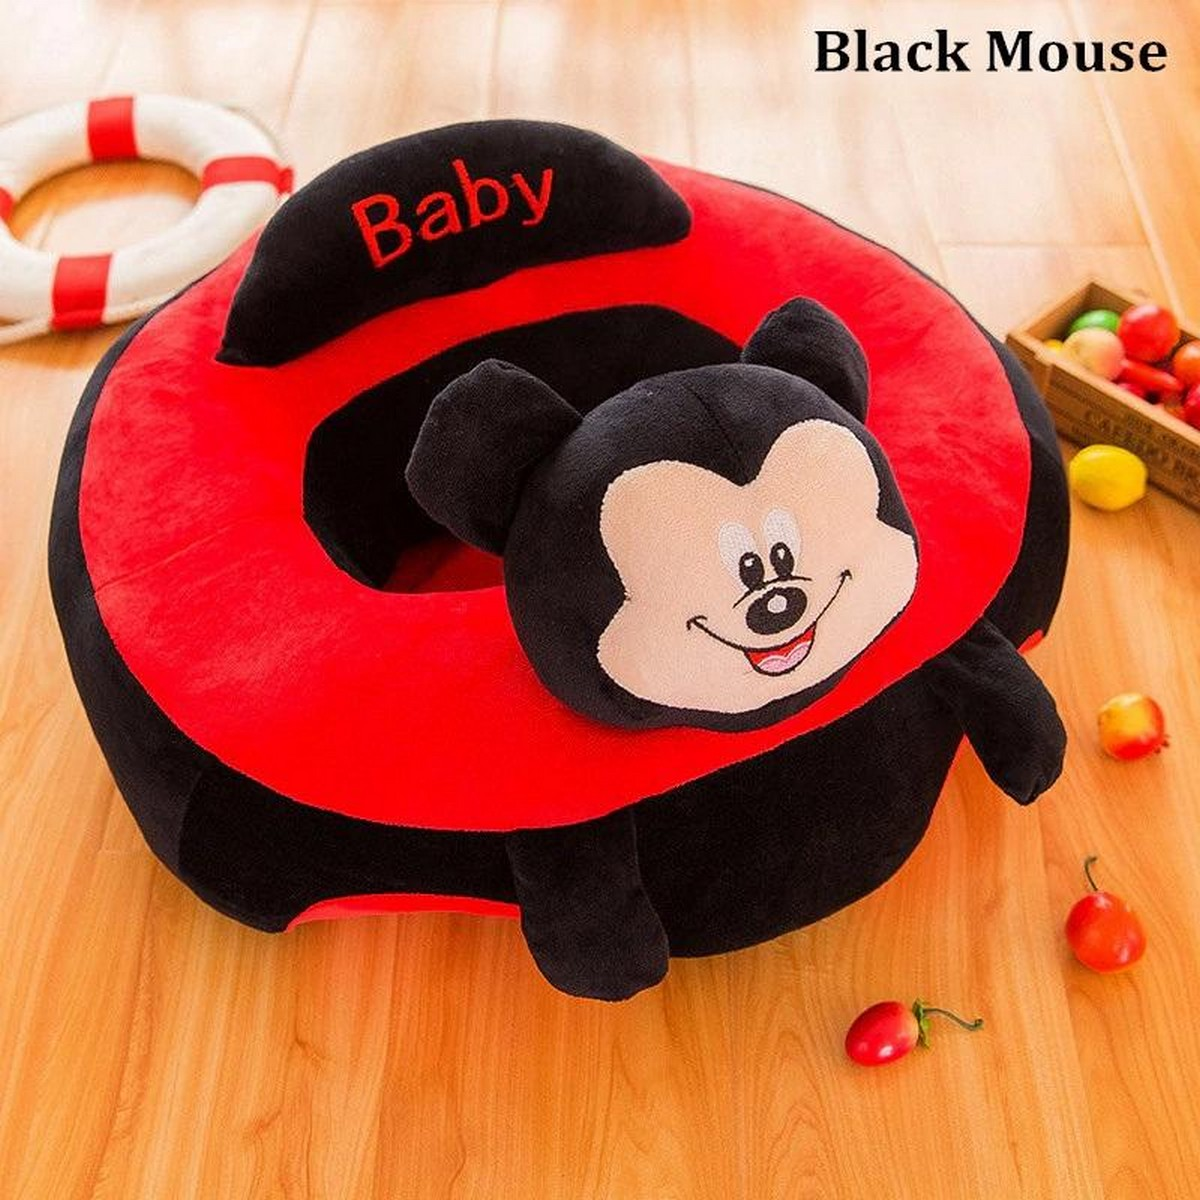 Portable Baby Support Seat Sofa Plush Soft Animal Shaped Baby Learning To Sit Chair Children's Plush Toy For 0-12 Months Baby